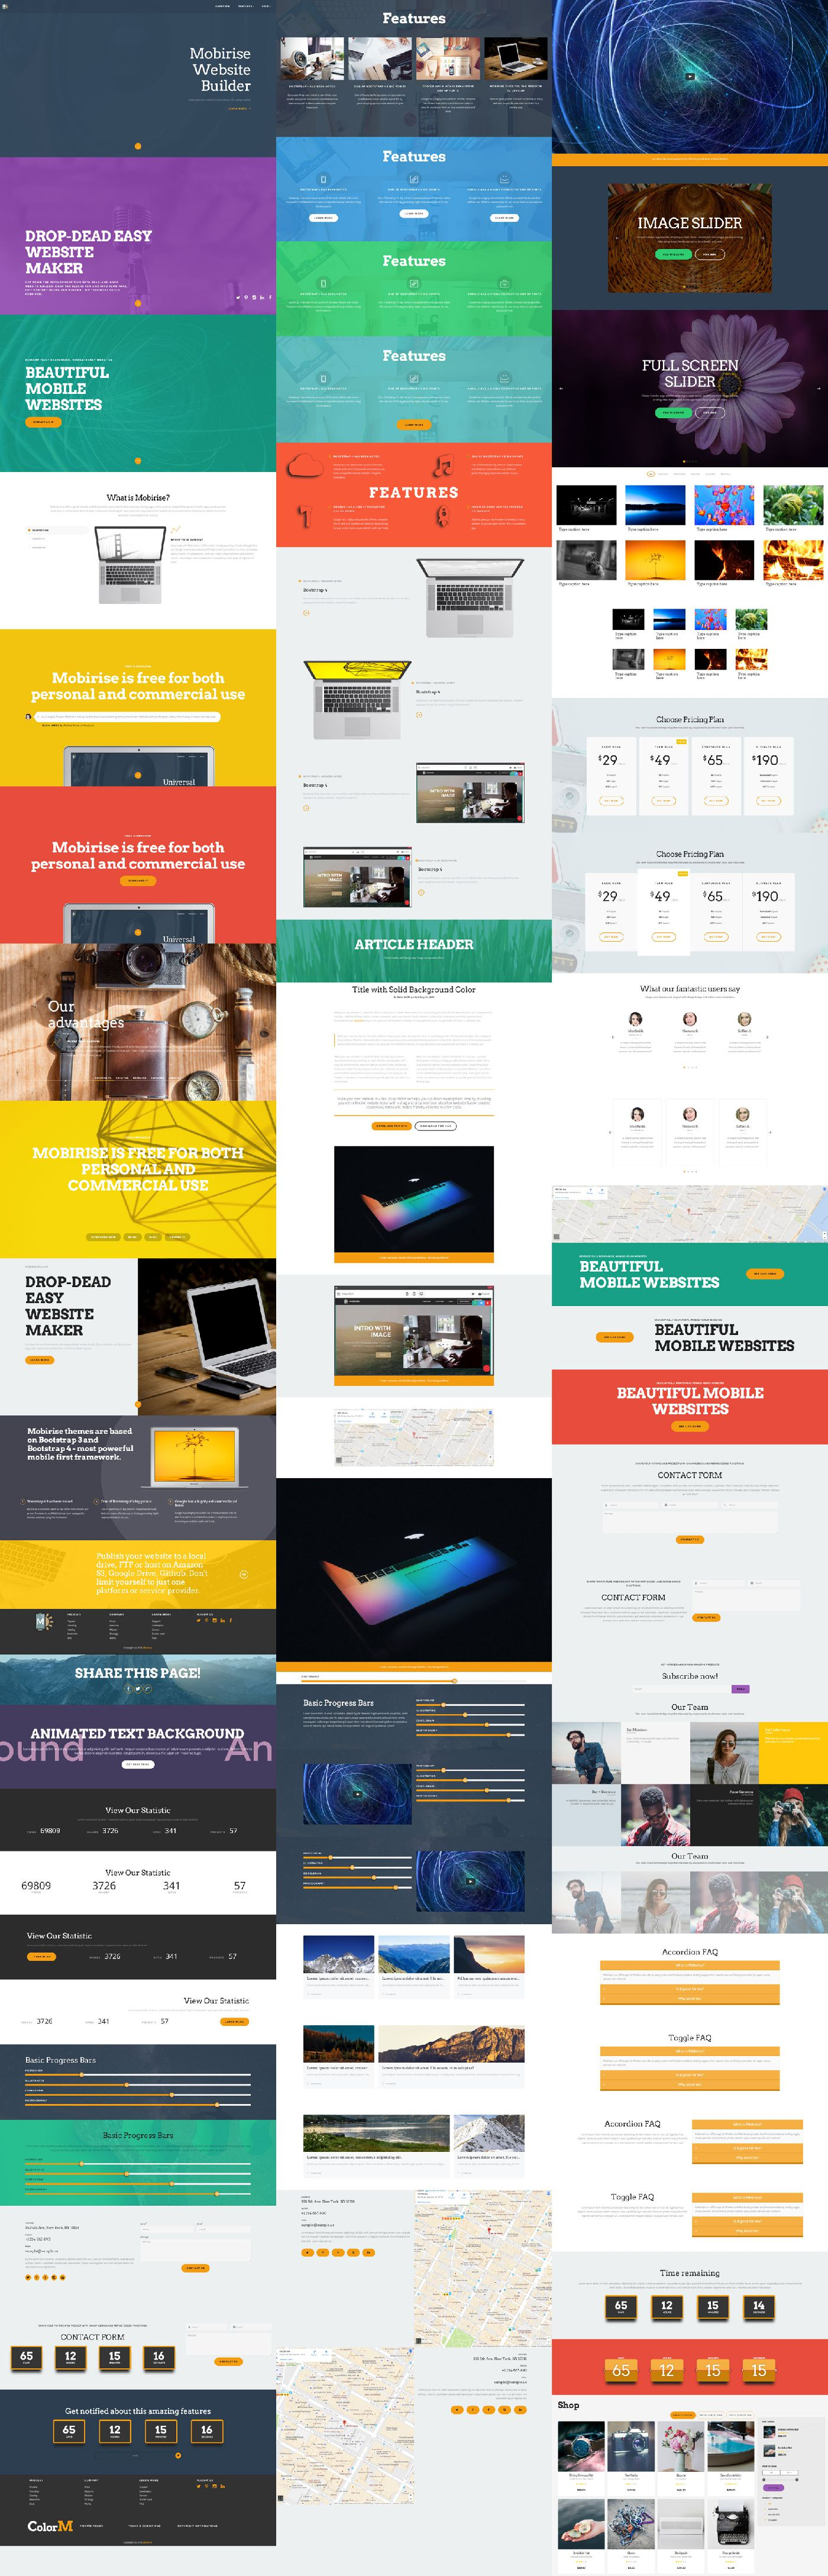 Image of all Blocks available in Bootstrap Responsive Template